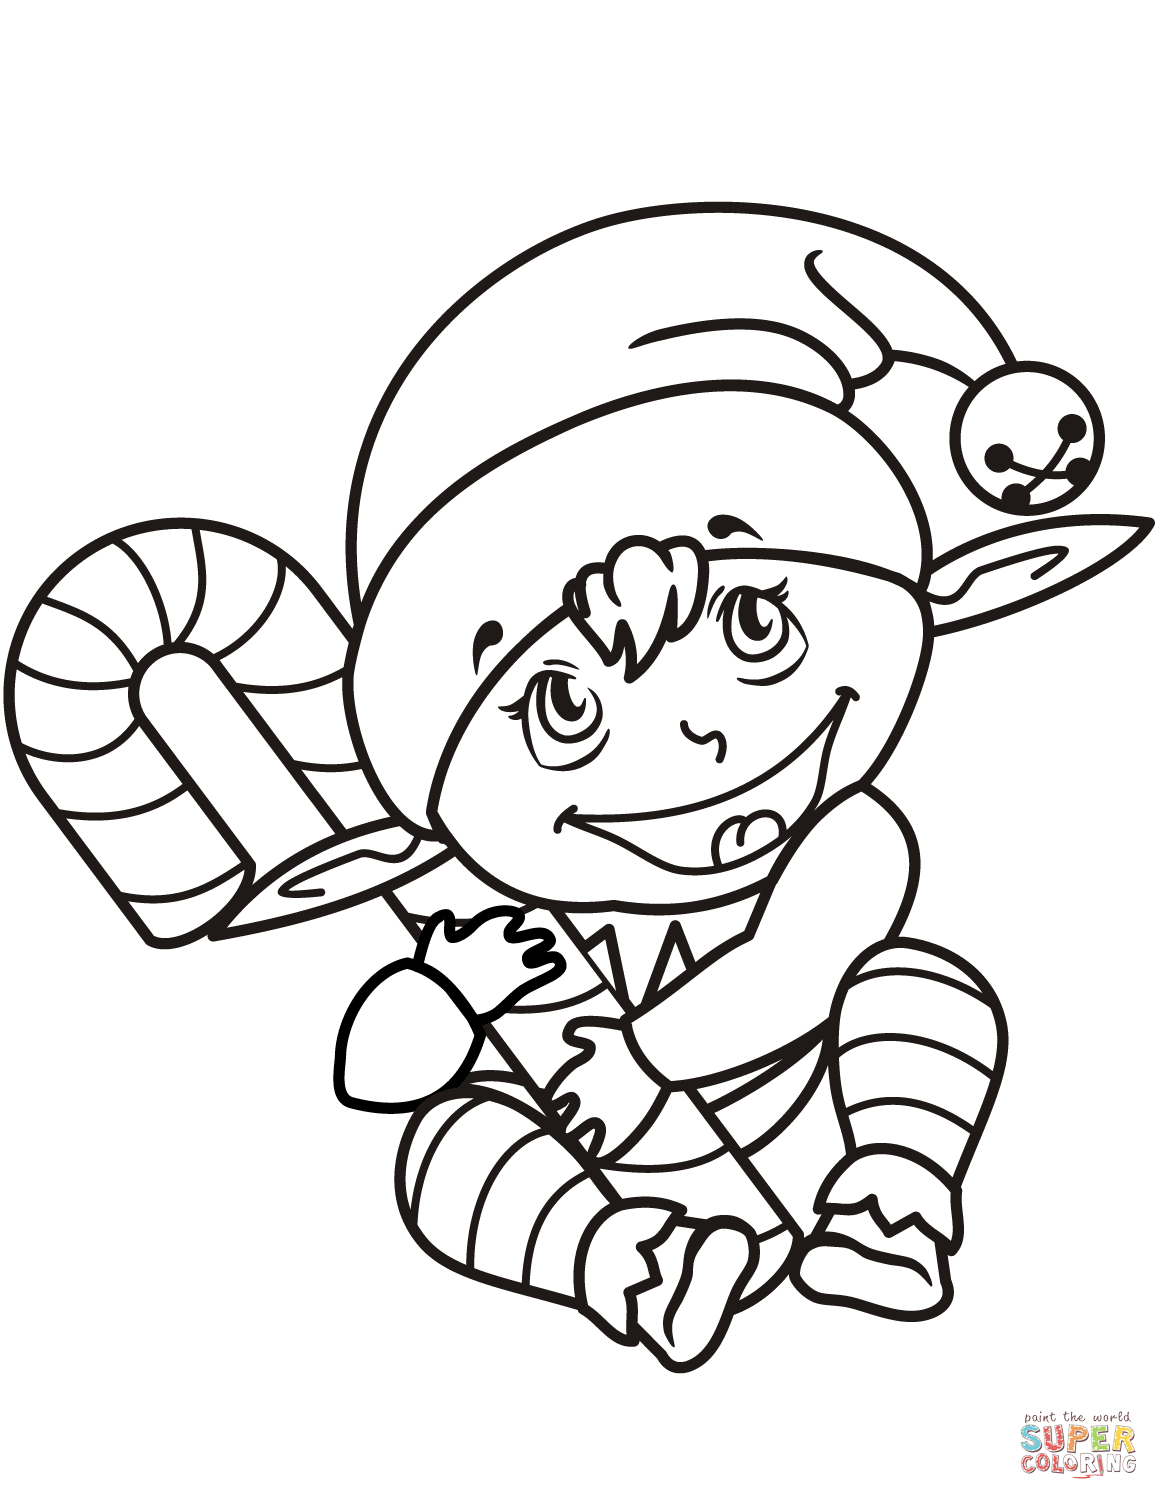 Simple Elf Drawing at GetDrawings | Free download